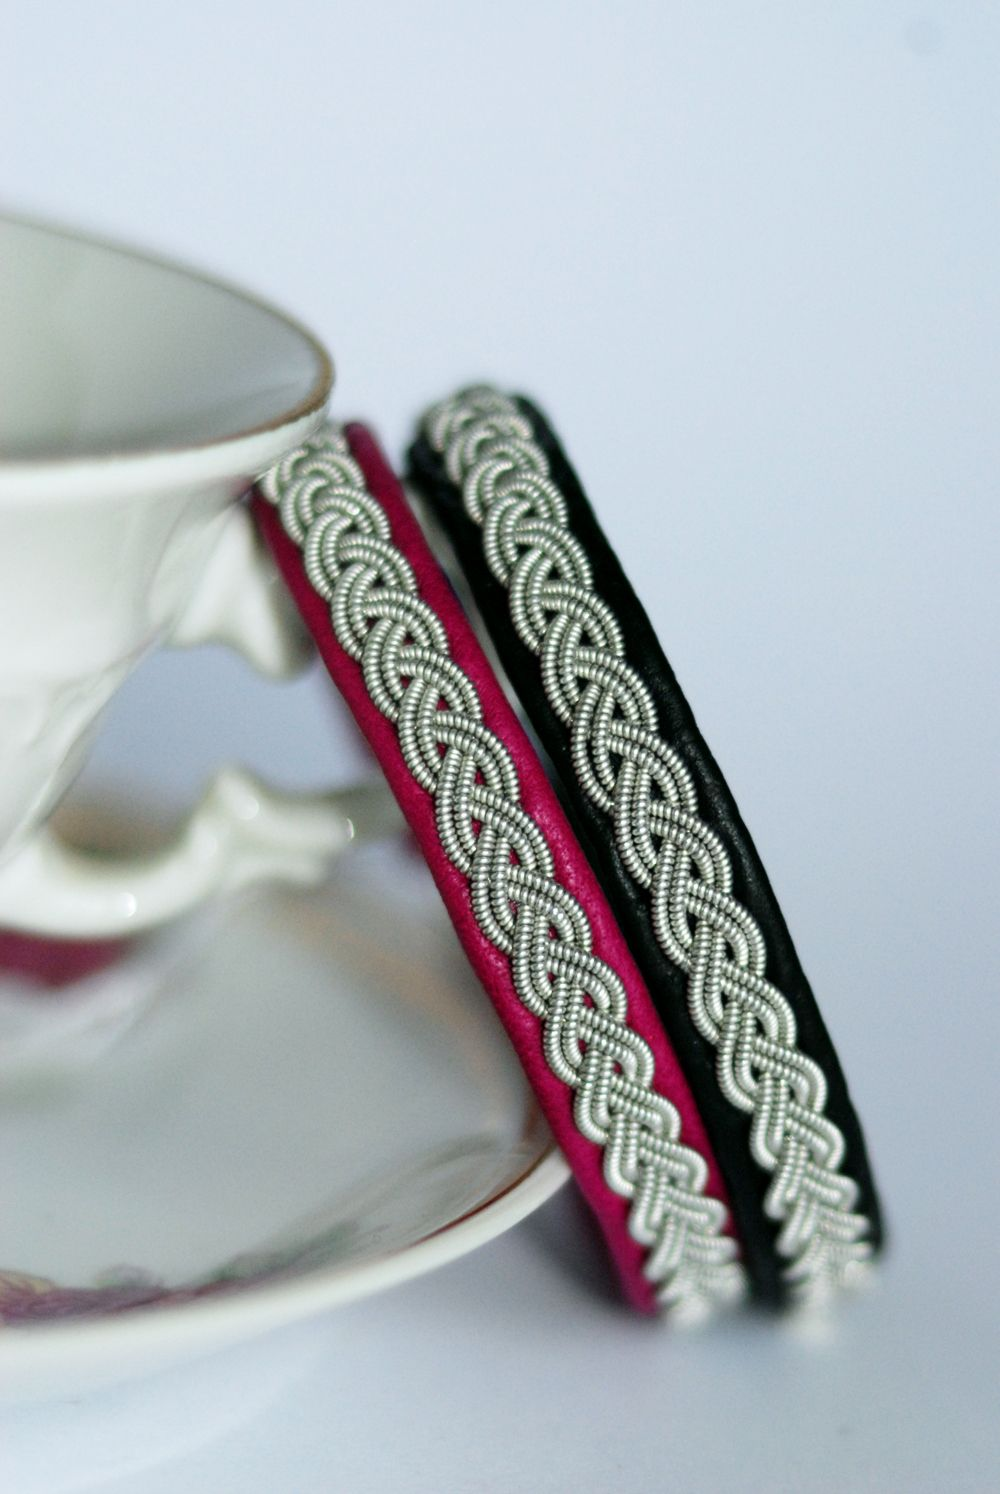 Handmade bracelets by Gjersvold Design. Made with leather from reindeer and pewter/silver thread.